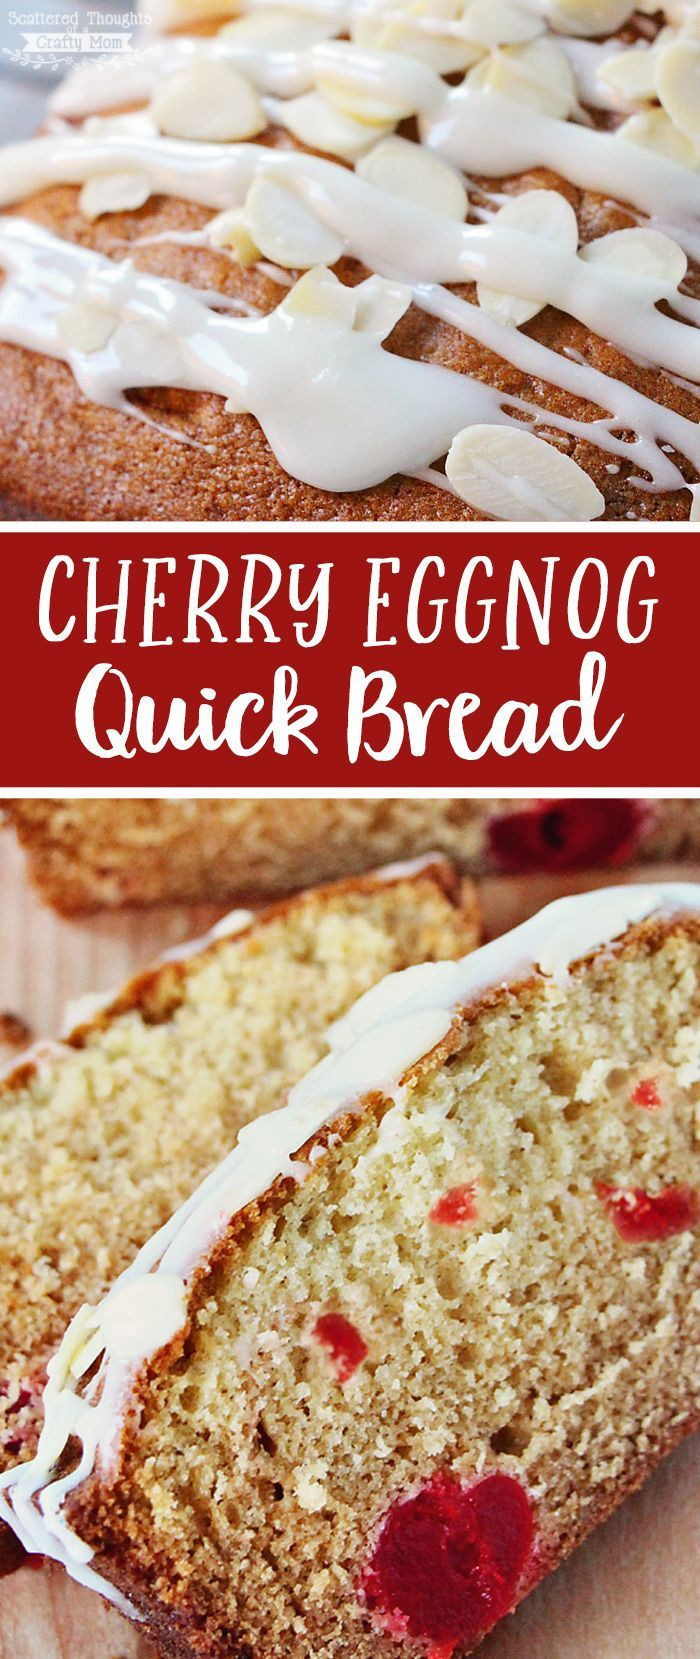 Christmas Quick Bread Recipes  17 Best images about Christmas Desserts on Pinterest